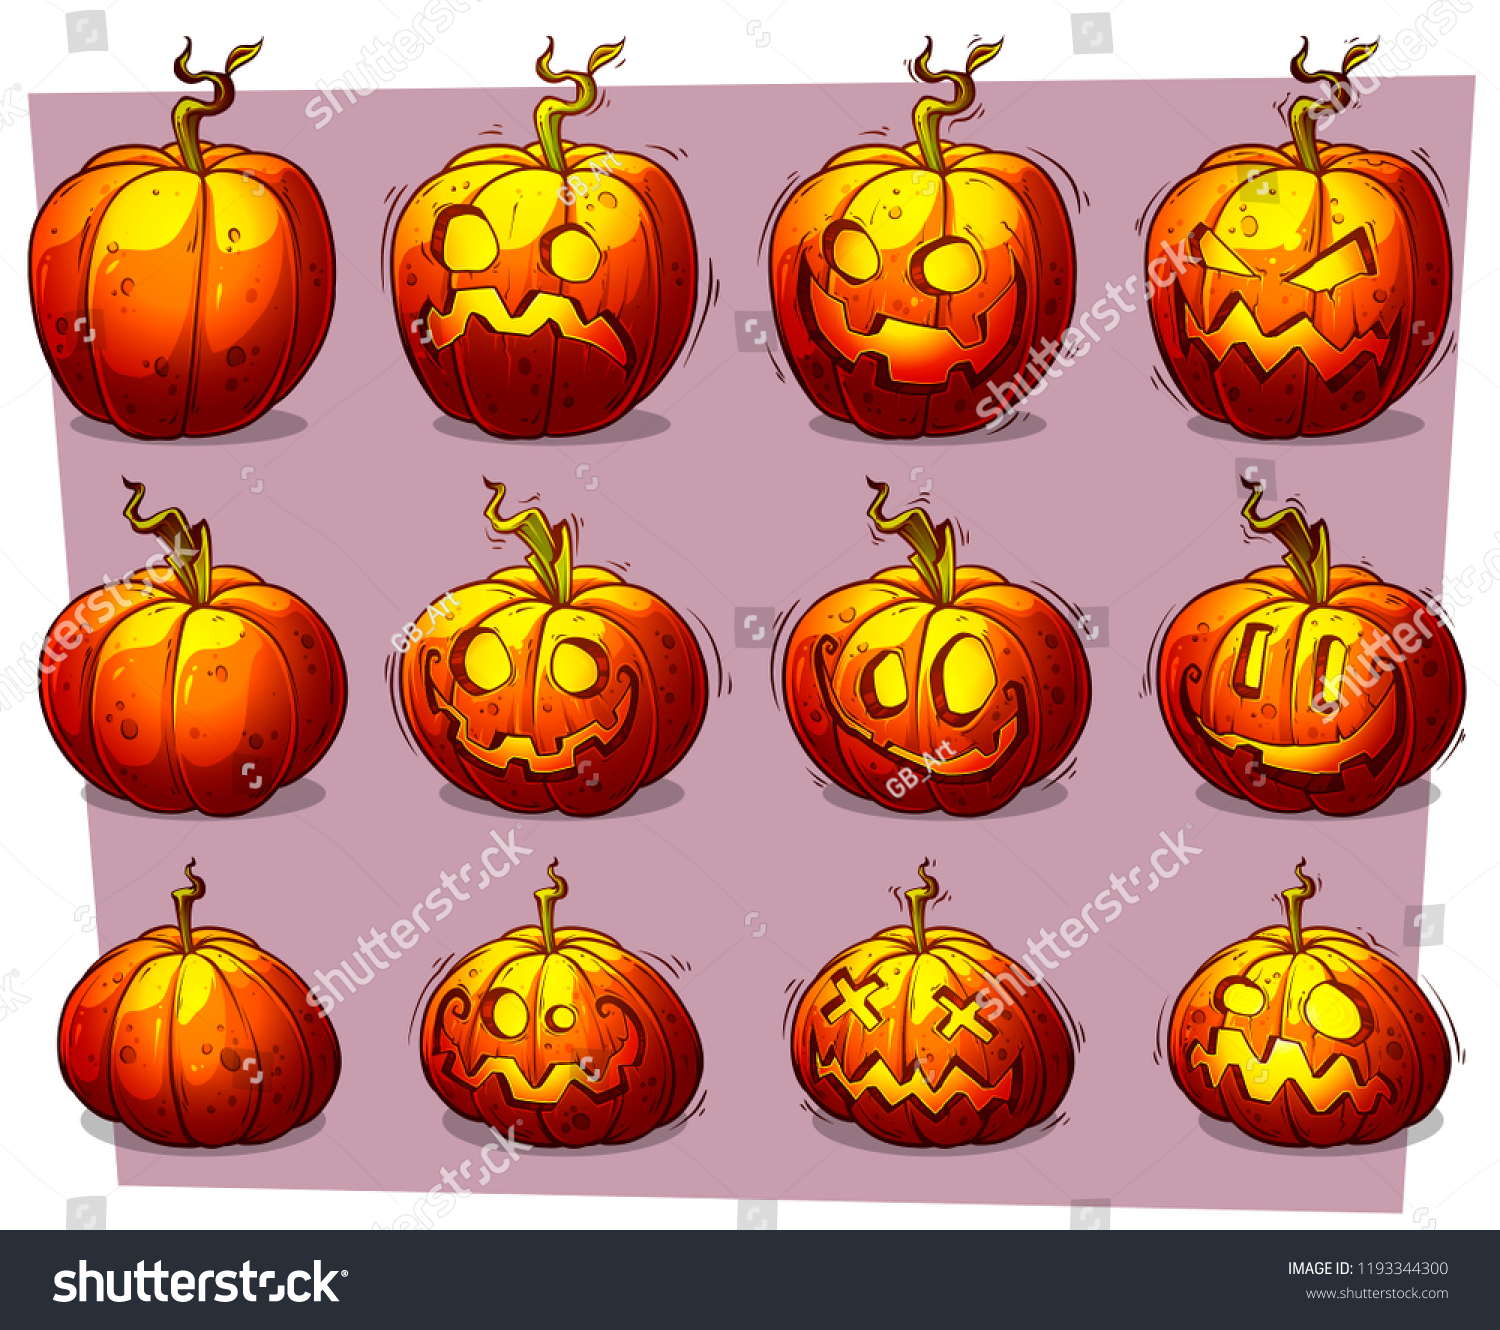 Cartoon Colorful Funny Halloween Pumpkins Different Stock Vector Royalty Free 1193344300